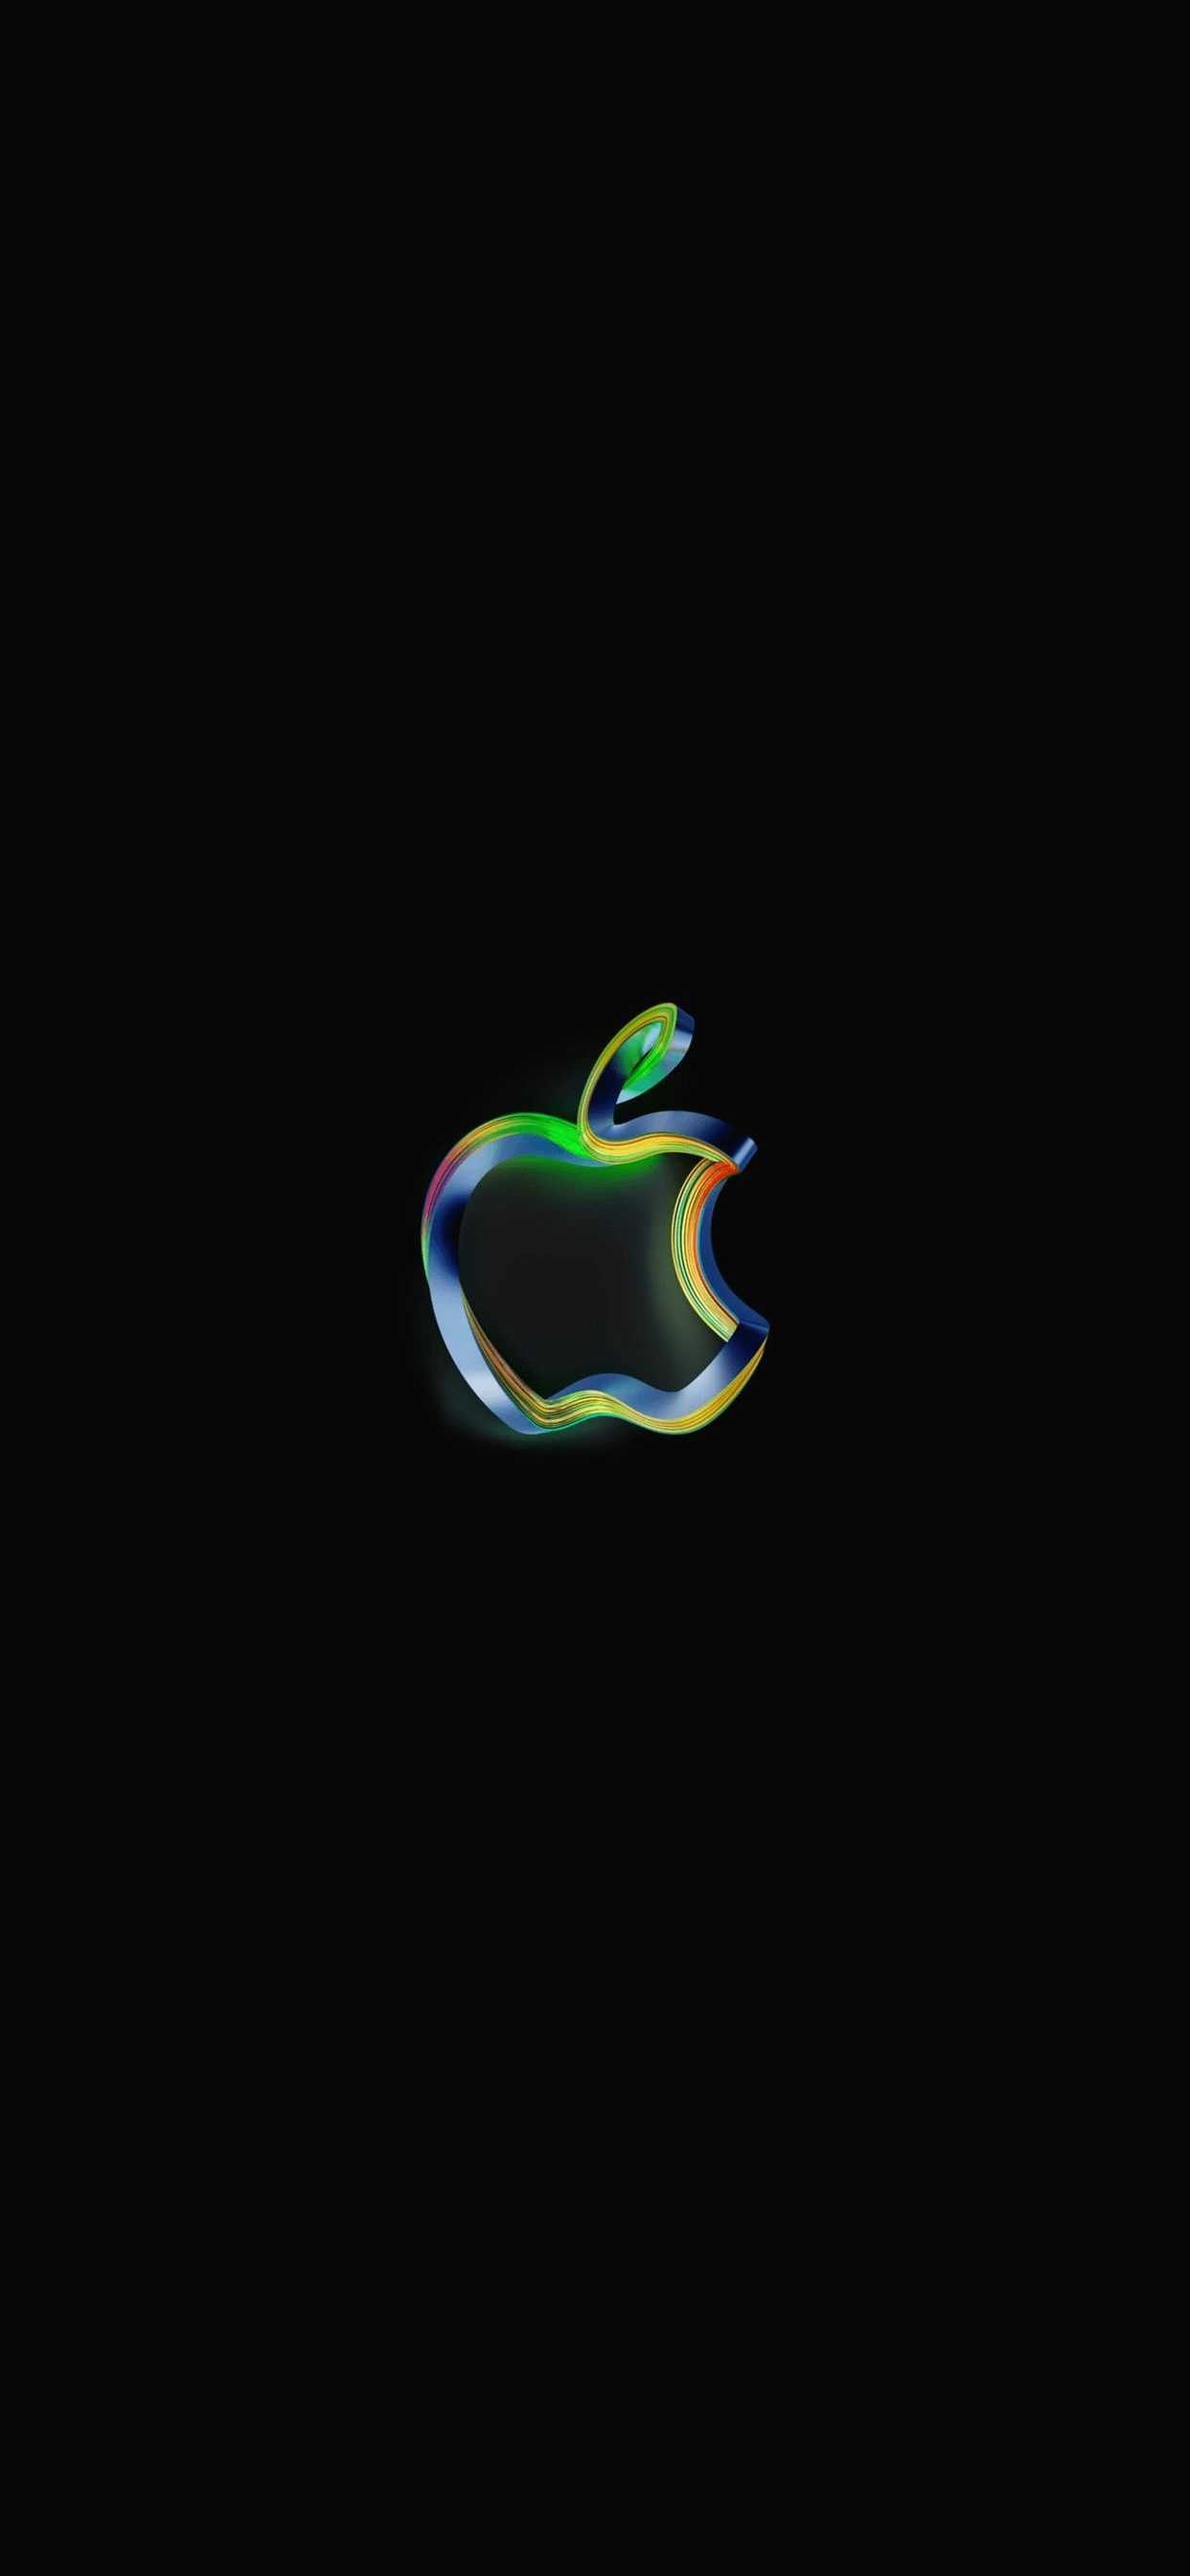 Logo Iphone Wallpapers Wallpaper Cave